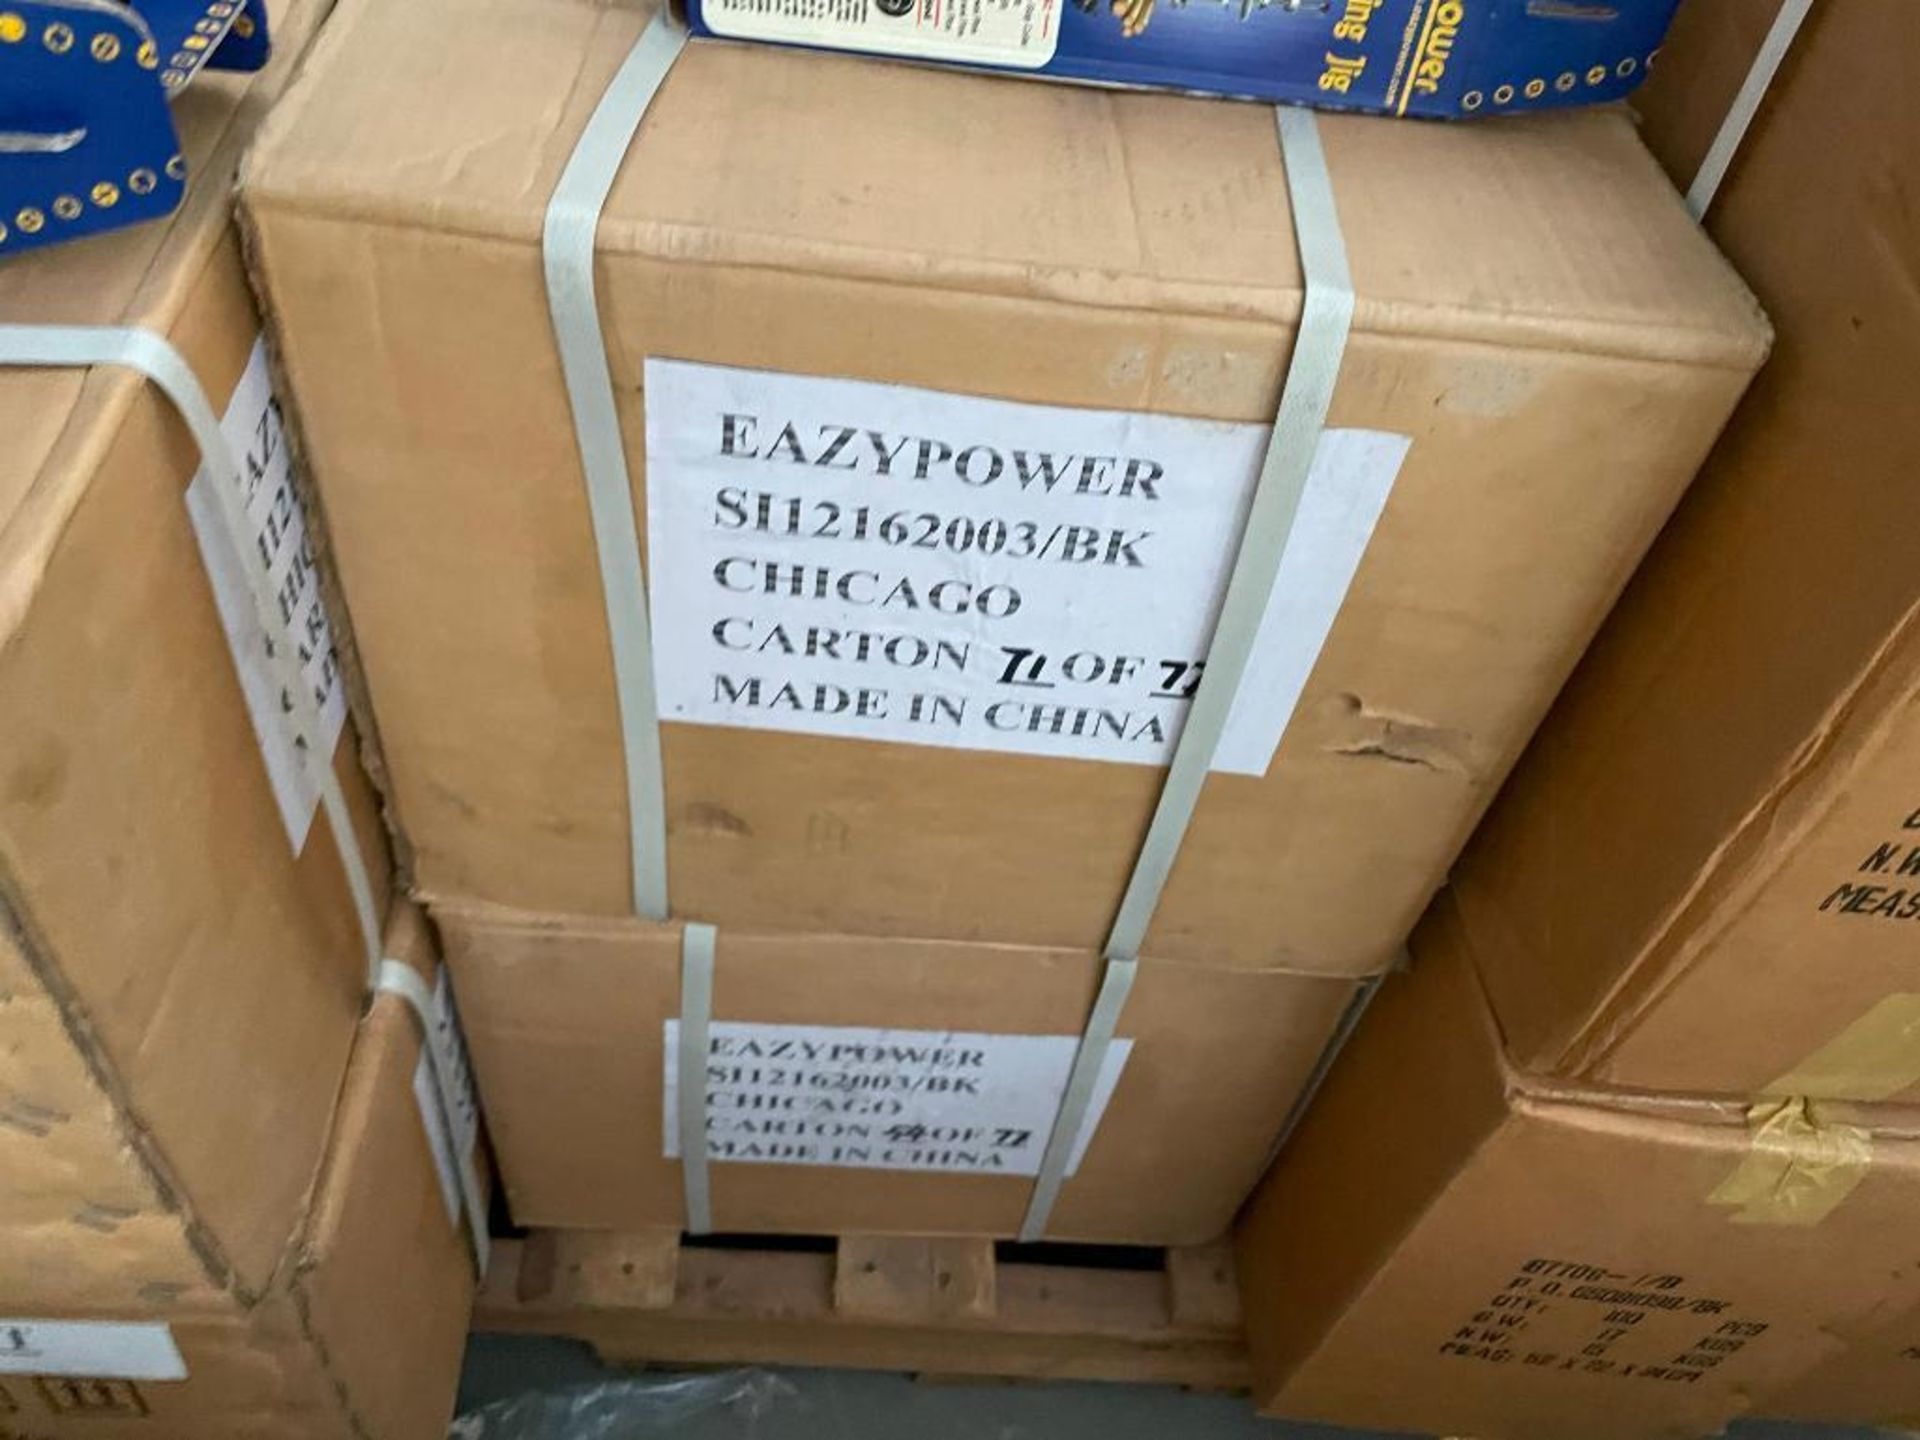 (26) PRECISION DOWELING JIG CLAMP PINS SET BRAND/MODEL EAZYPOWER ADDITIONAL INFO TOTAL LOT RETAIL PR - Image 2 of 3